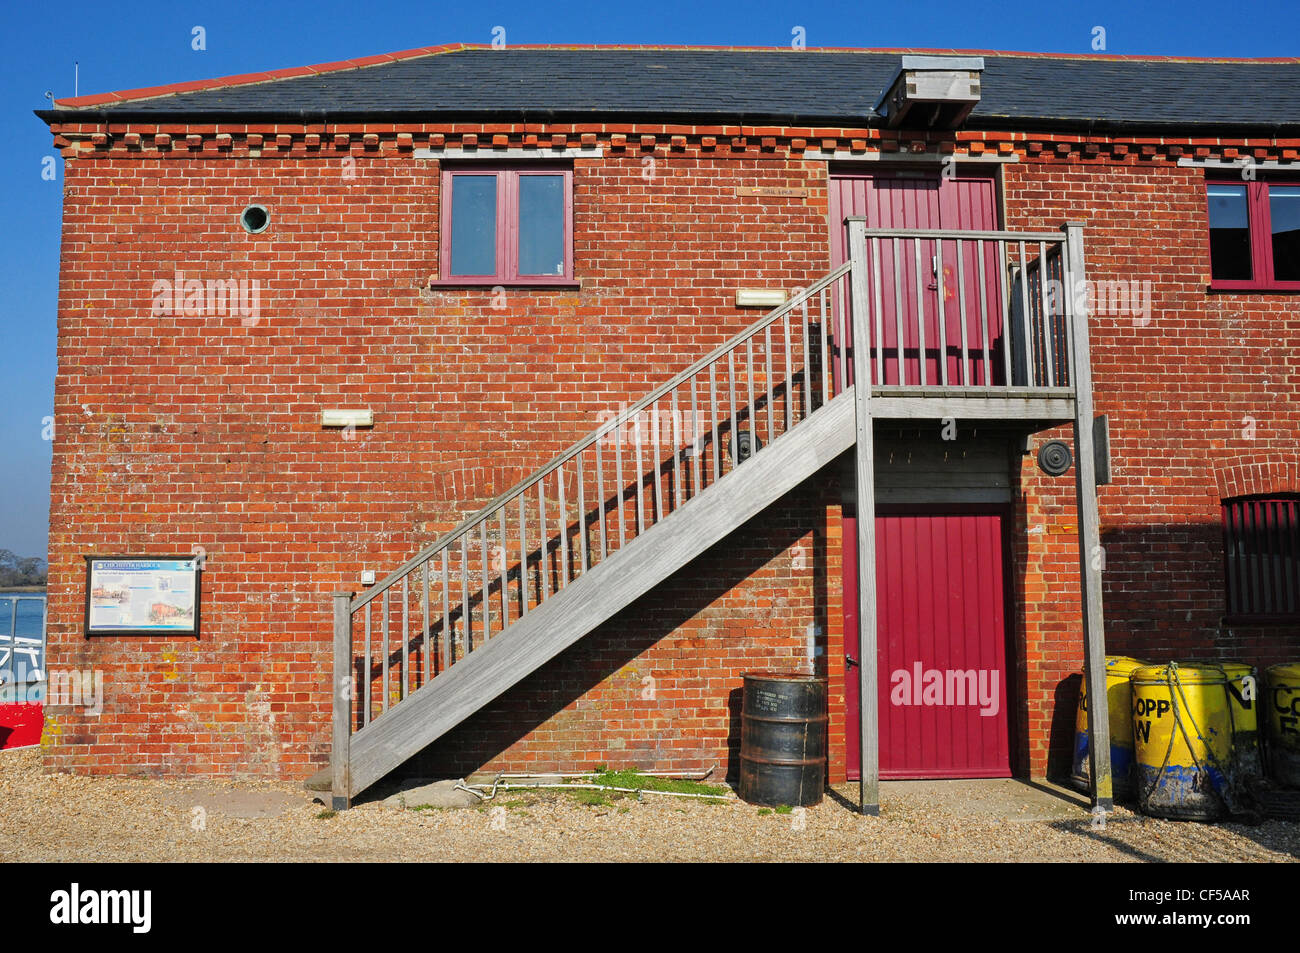 The Old Grainstore, Dell Quay. - Stock Image